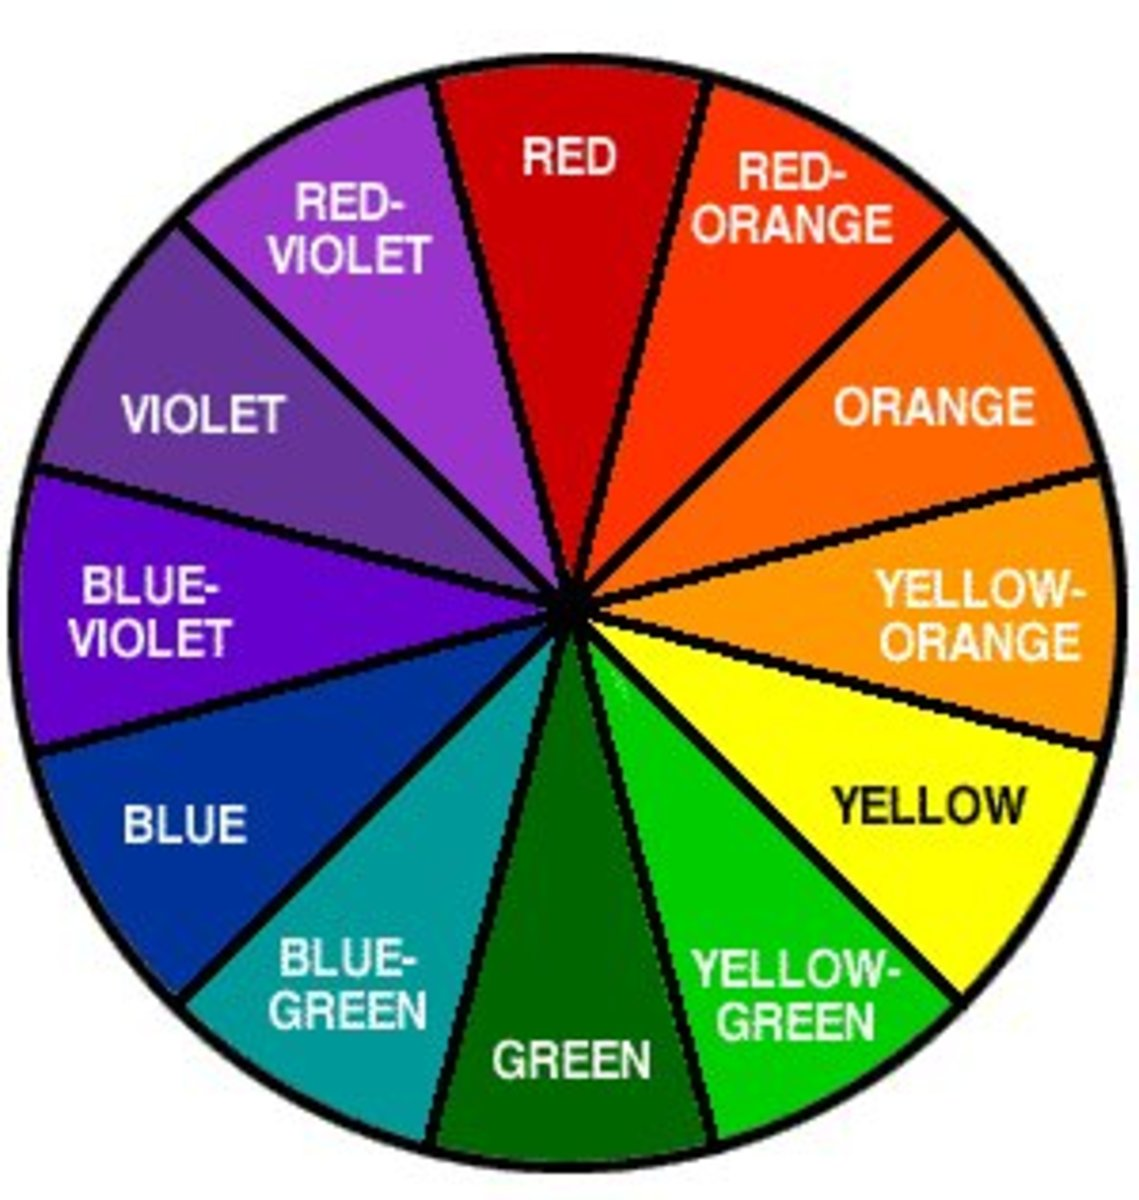 The color wheel - colors opposite to each other will neutralize each other.